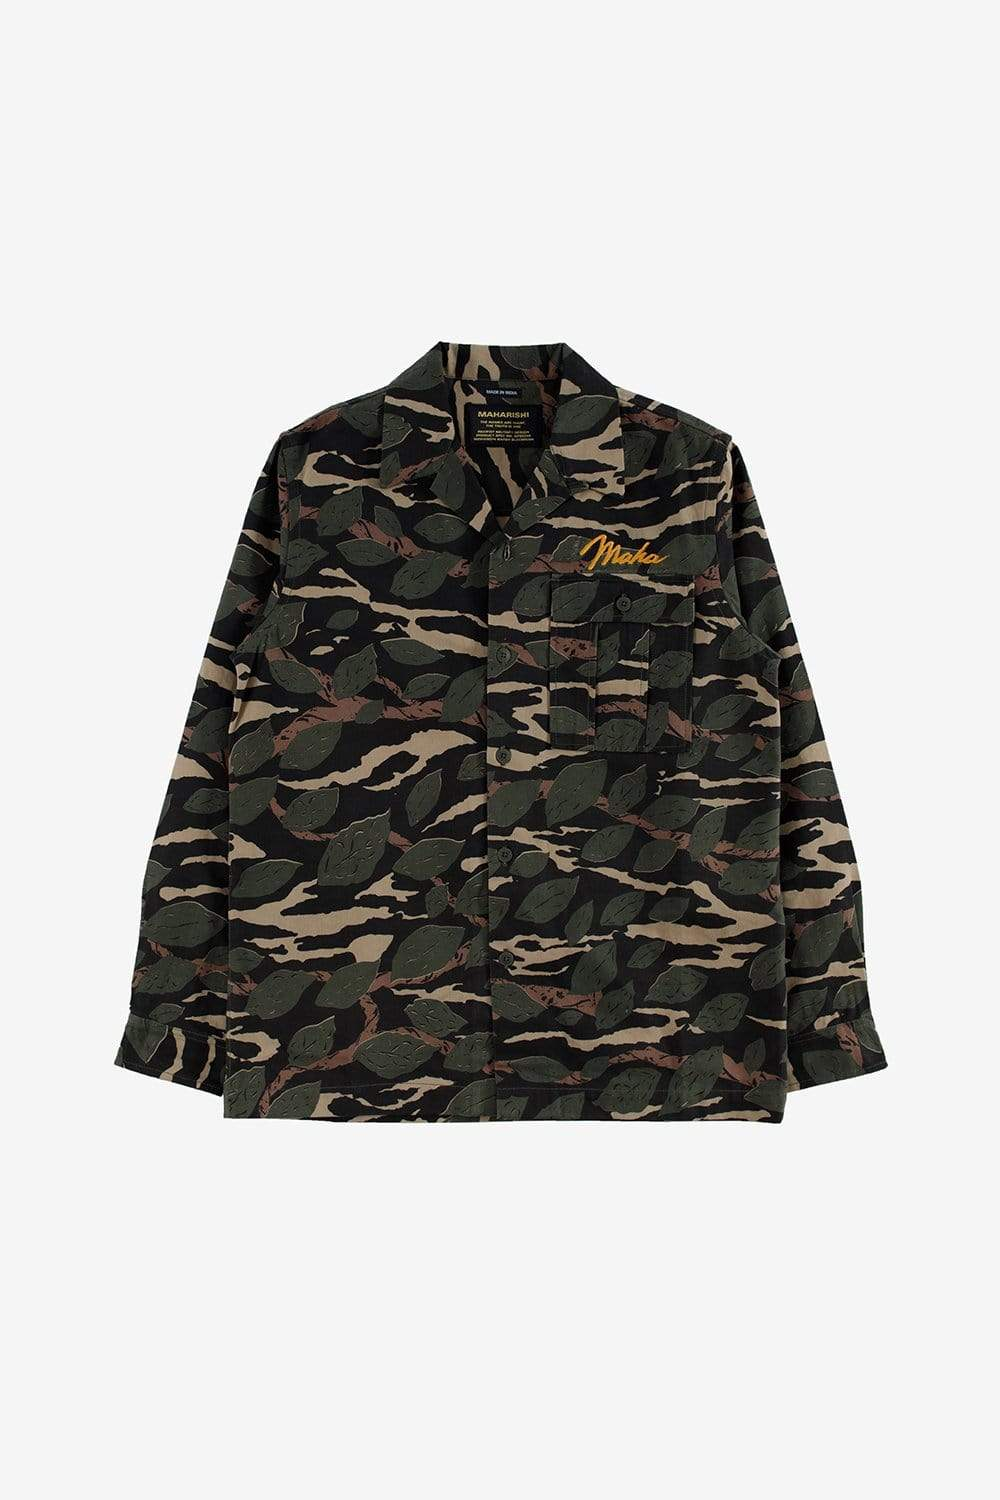 maharishi Apparel Reversible Camo Thayer Tee